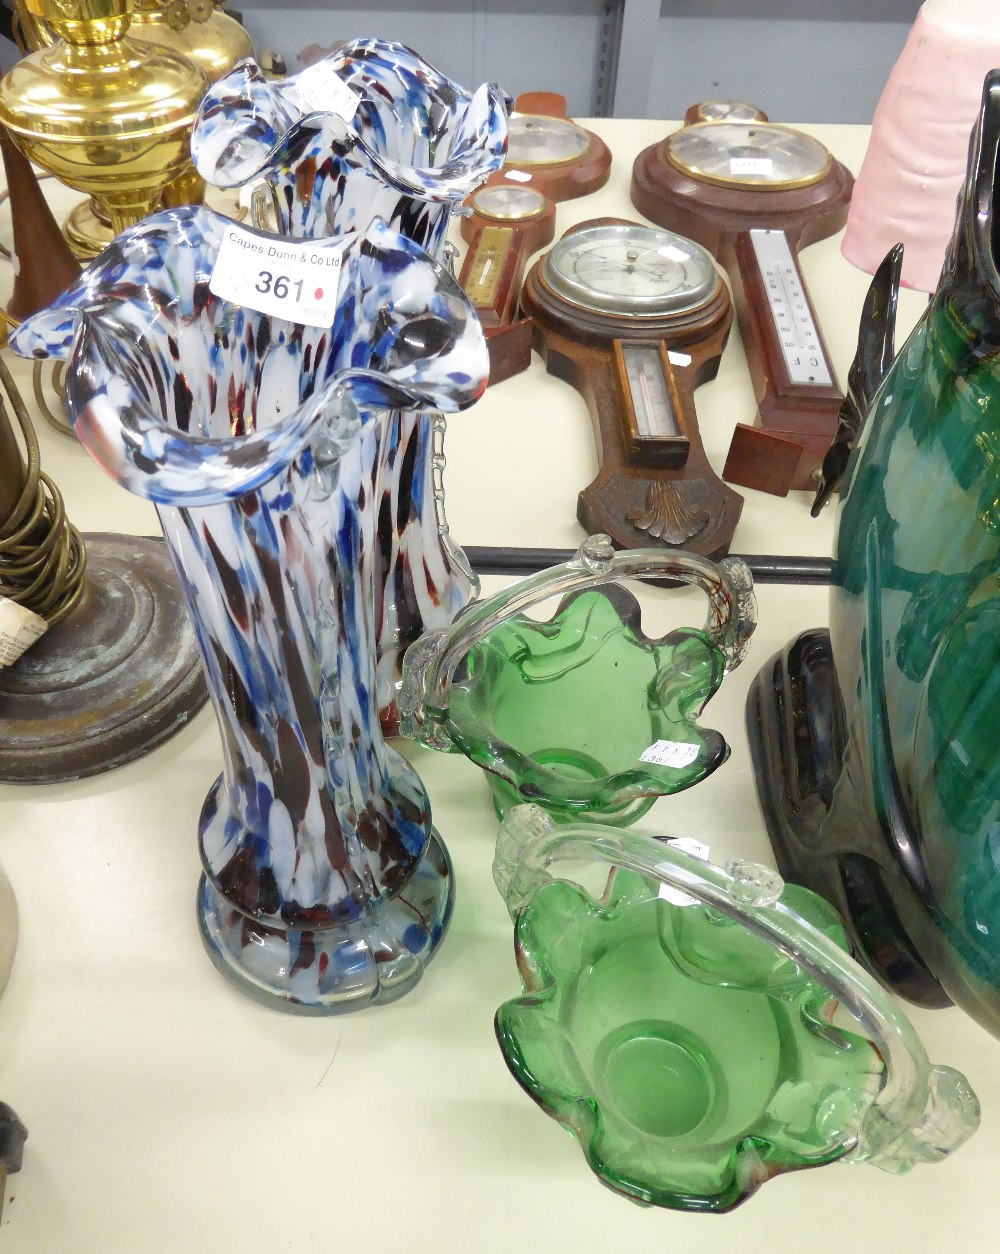 Lot 361 - PAIR OF COLOURED GLASS VASES WITH MOTTLED DETAIL AND FLARED RIMS, AND A PAIR OF GREEN GLASS